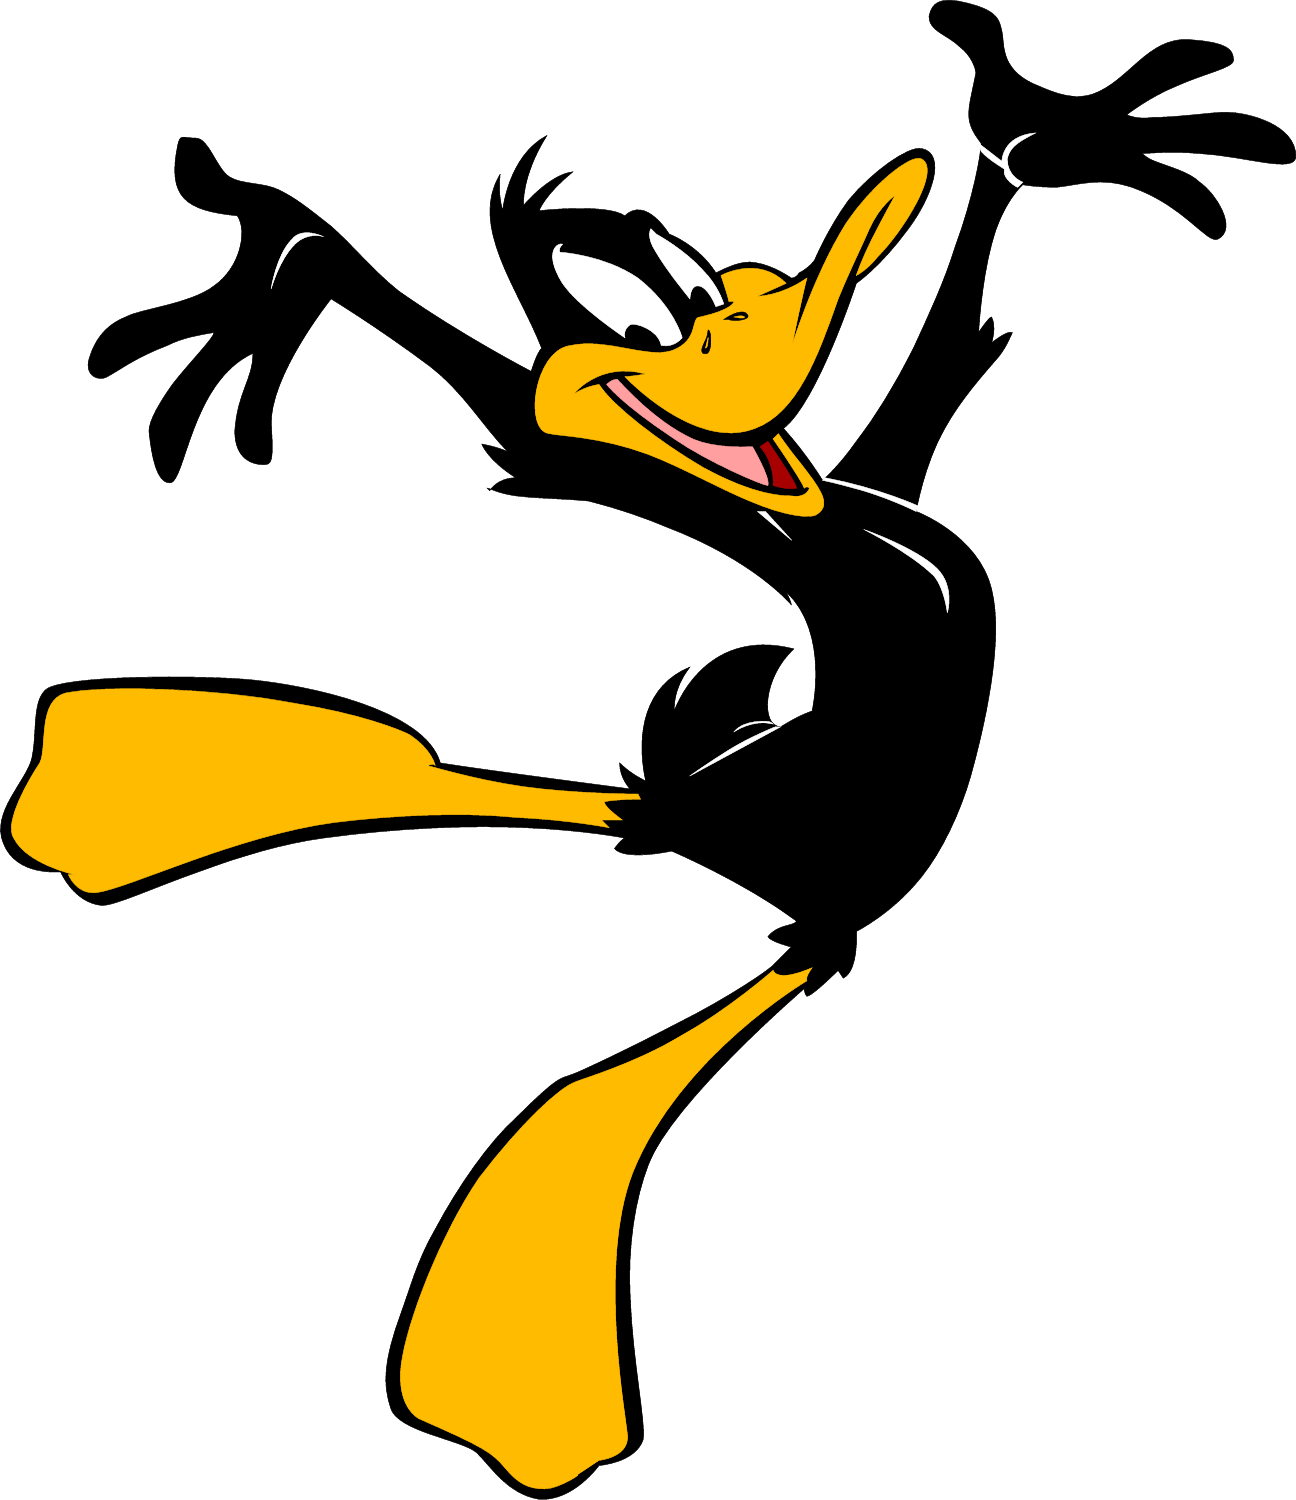 Looney tunes pinterest and. Hockey clipart daffy duck